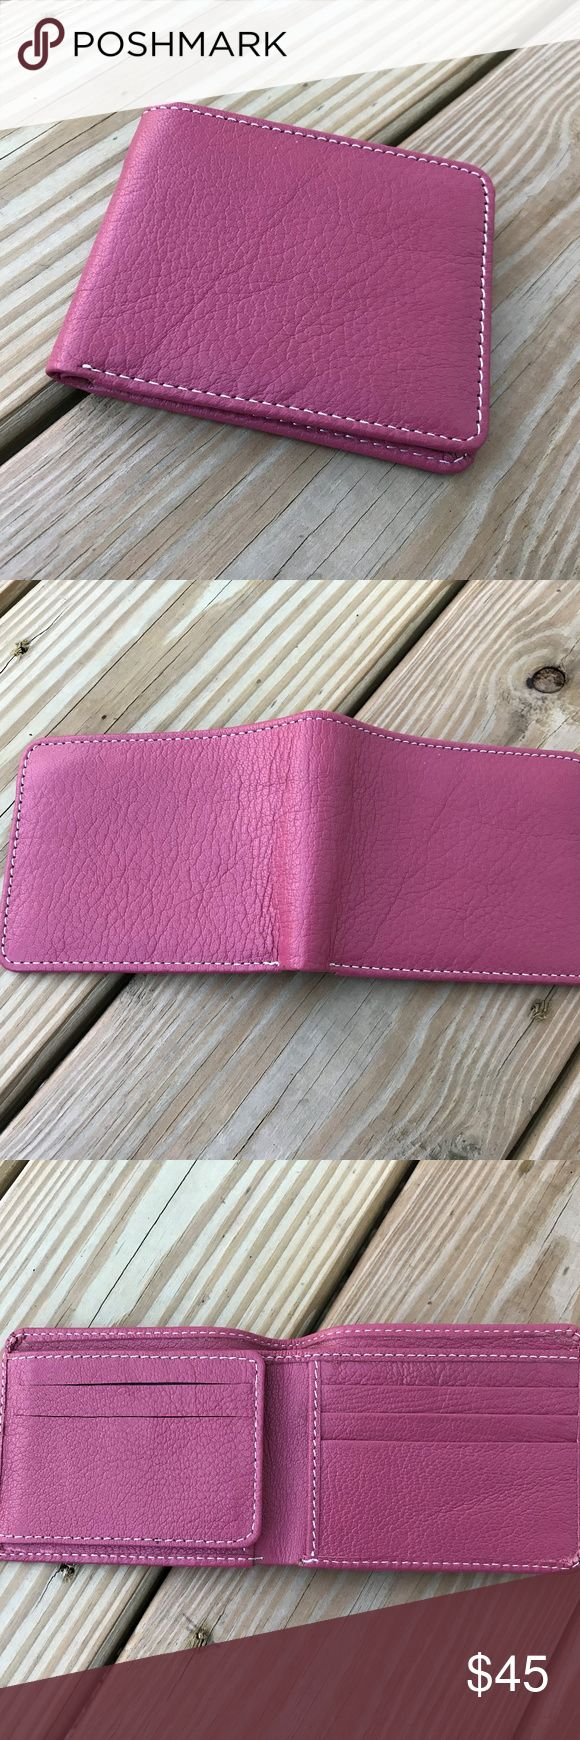 Mens Wallet Bifold Handmade Men Purse Salmon Mens Wallet Bifold Handmade Men Purse Salmon Genuine Leather Card Holder Wallet  Unique Feature: Color ( Salmon ) and 8 Slots for Credit/debit card Size: 9 inches length (opened) x 4 inches wide, 4 1/2 inches (closed)  Hand Made Genuine Leather Shining Leather High Quality  Color = Salmon  Inside:  8 slots for credit/bank cards 2 separated slots for bills 1 slots with clear Plastic for Photo or ID card or Driving Card 2 Hidden pocket  Made in…